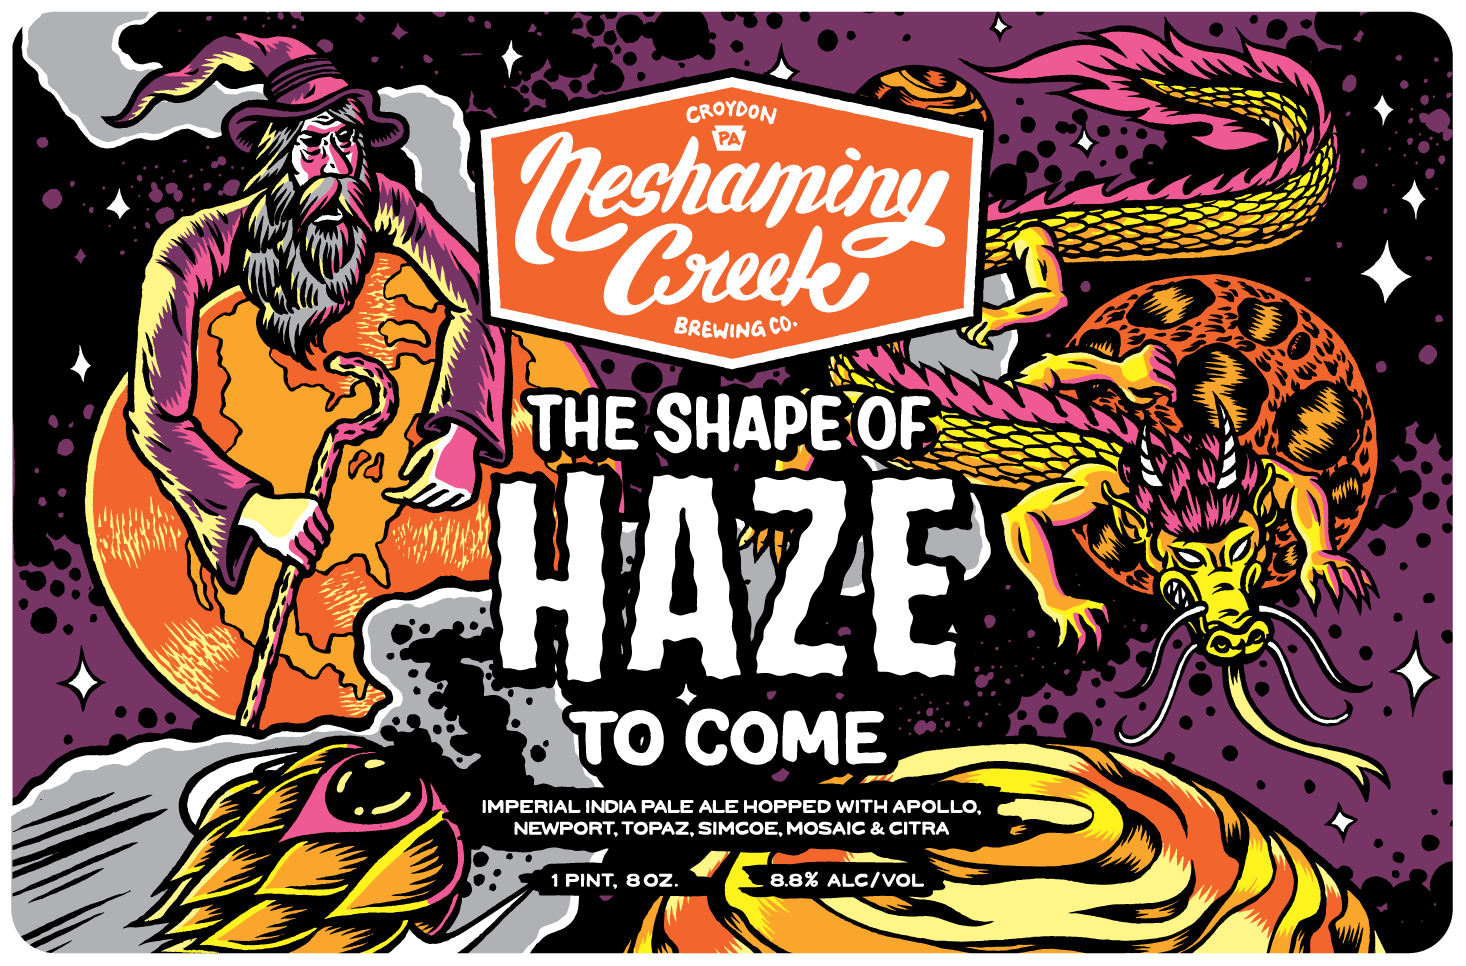 NCBC_TheShapeOfHazeToCome_ImpIPA_16ozLABEL_Final.png